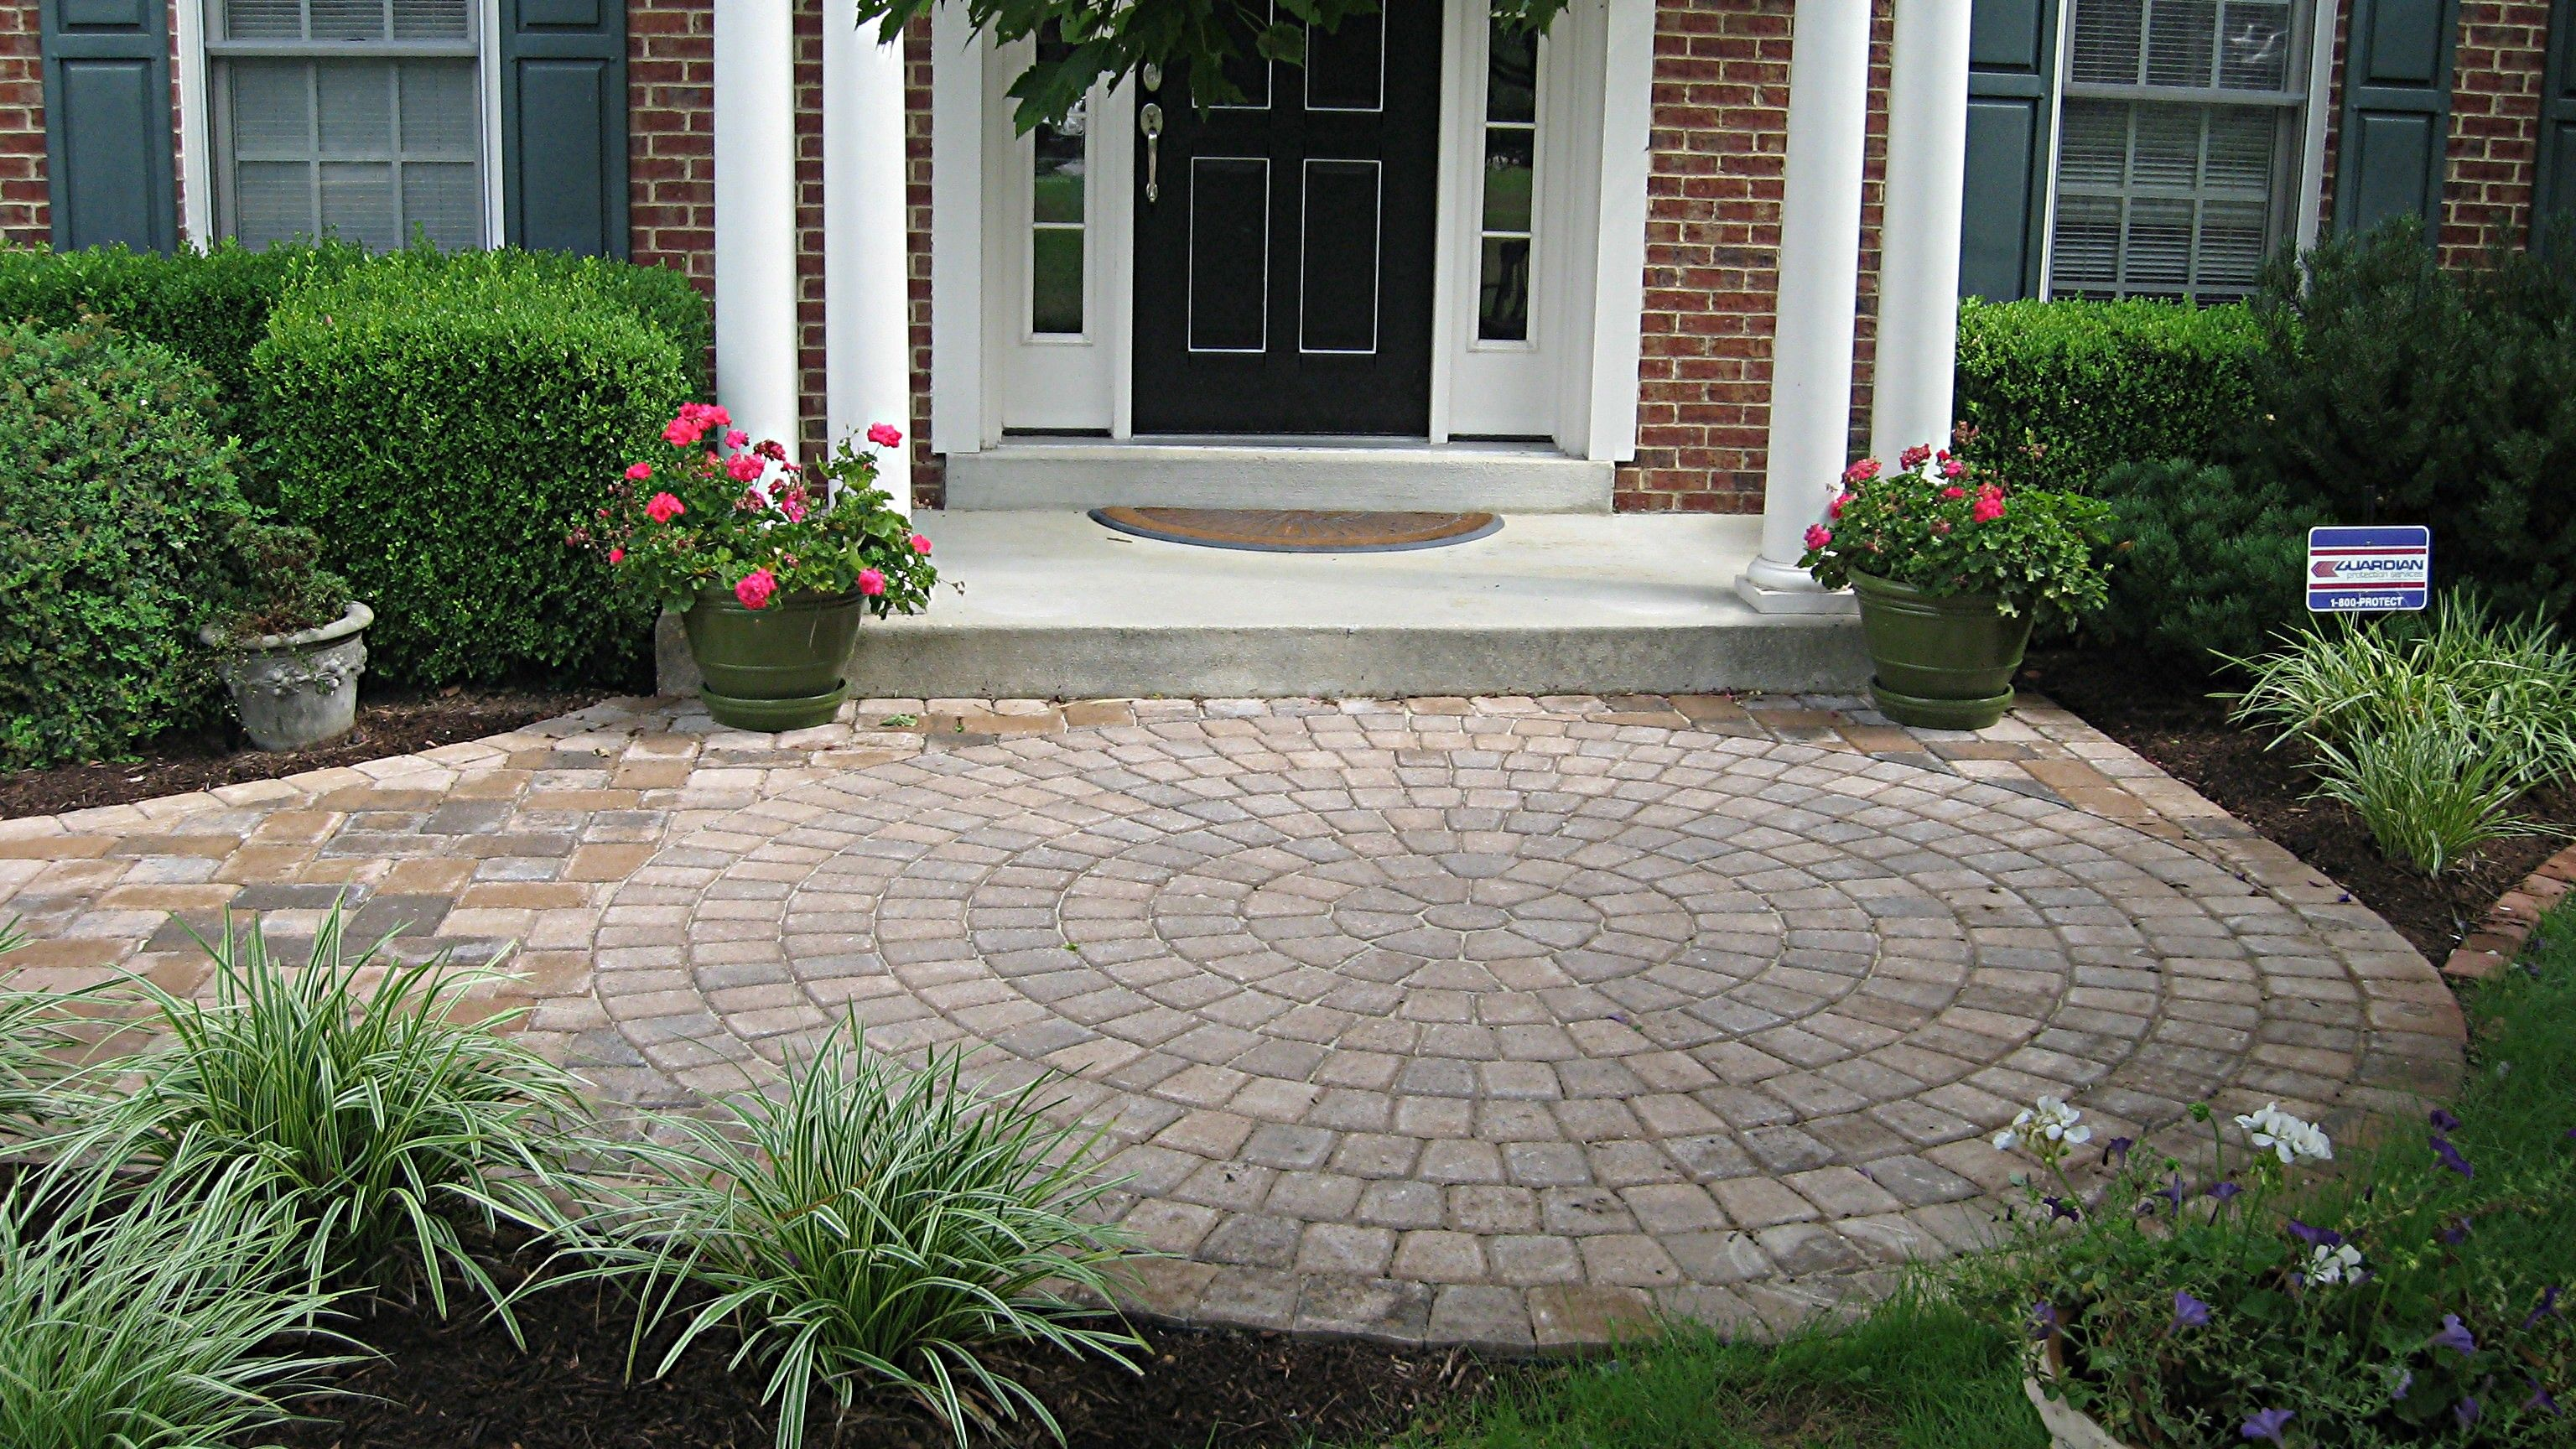 Landscaping ideas for front yard with porch  Low cement porch  letus go outside  Pinterest  Paver walkway